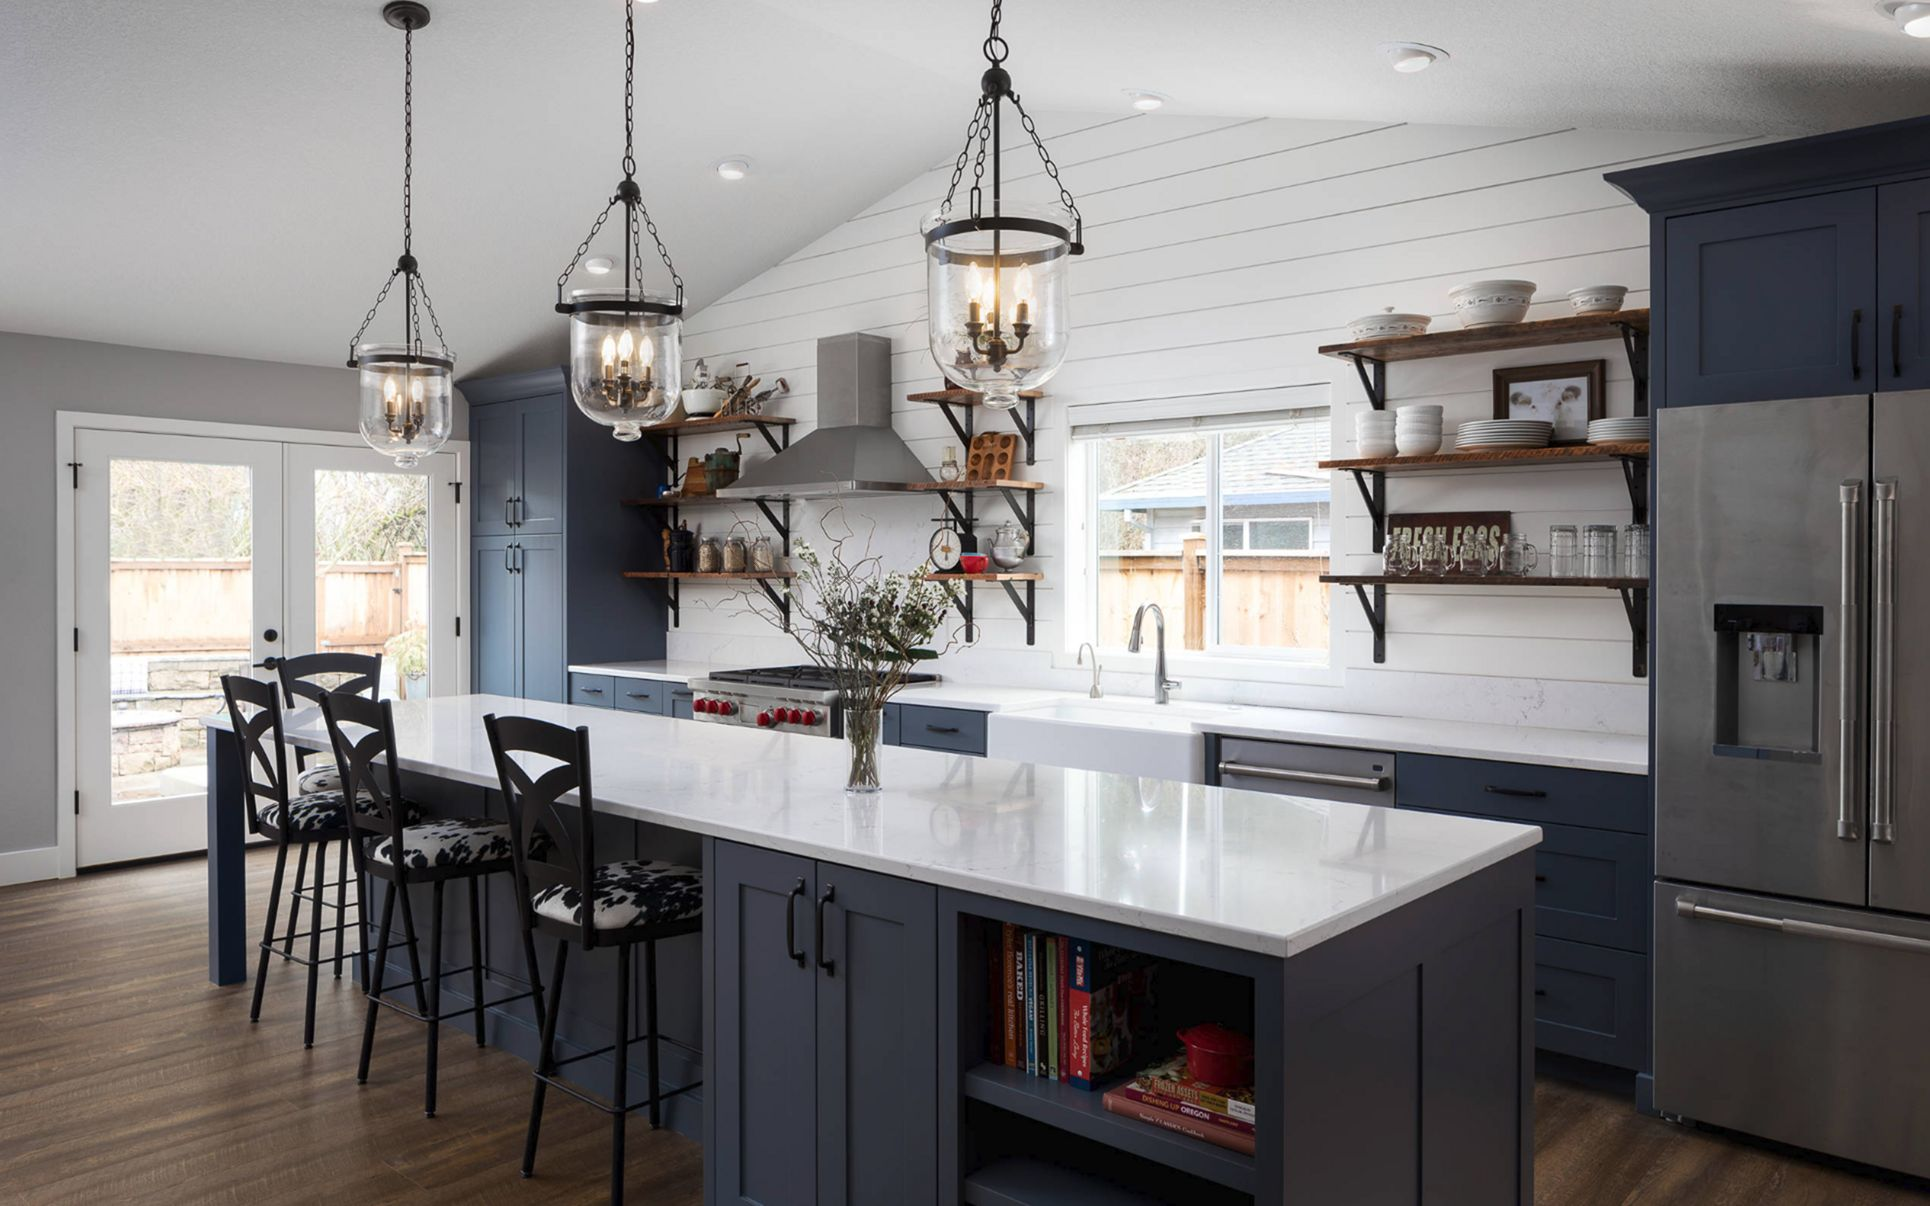 35 Amazing Modern Farmhouse Kitchen Design And Decorating Dexorate,Full Size Rooms To Go Bedroom Sets